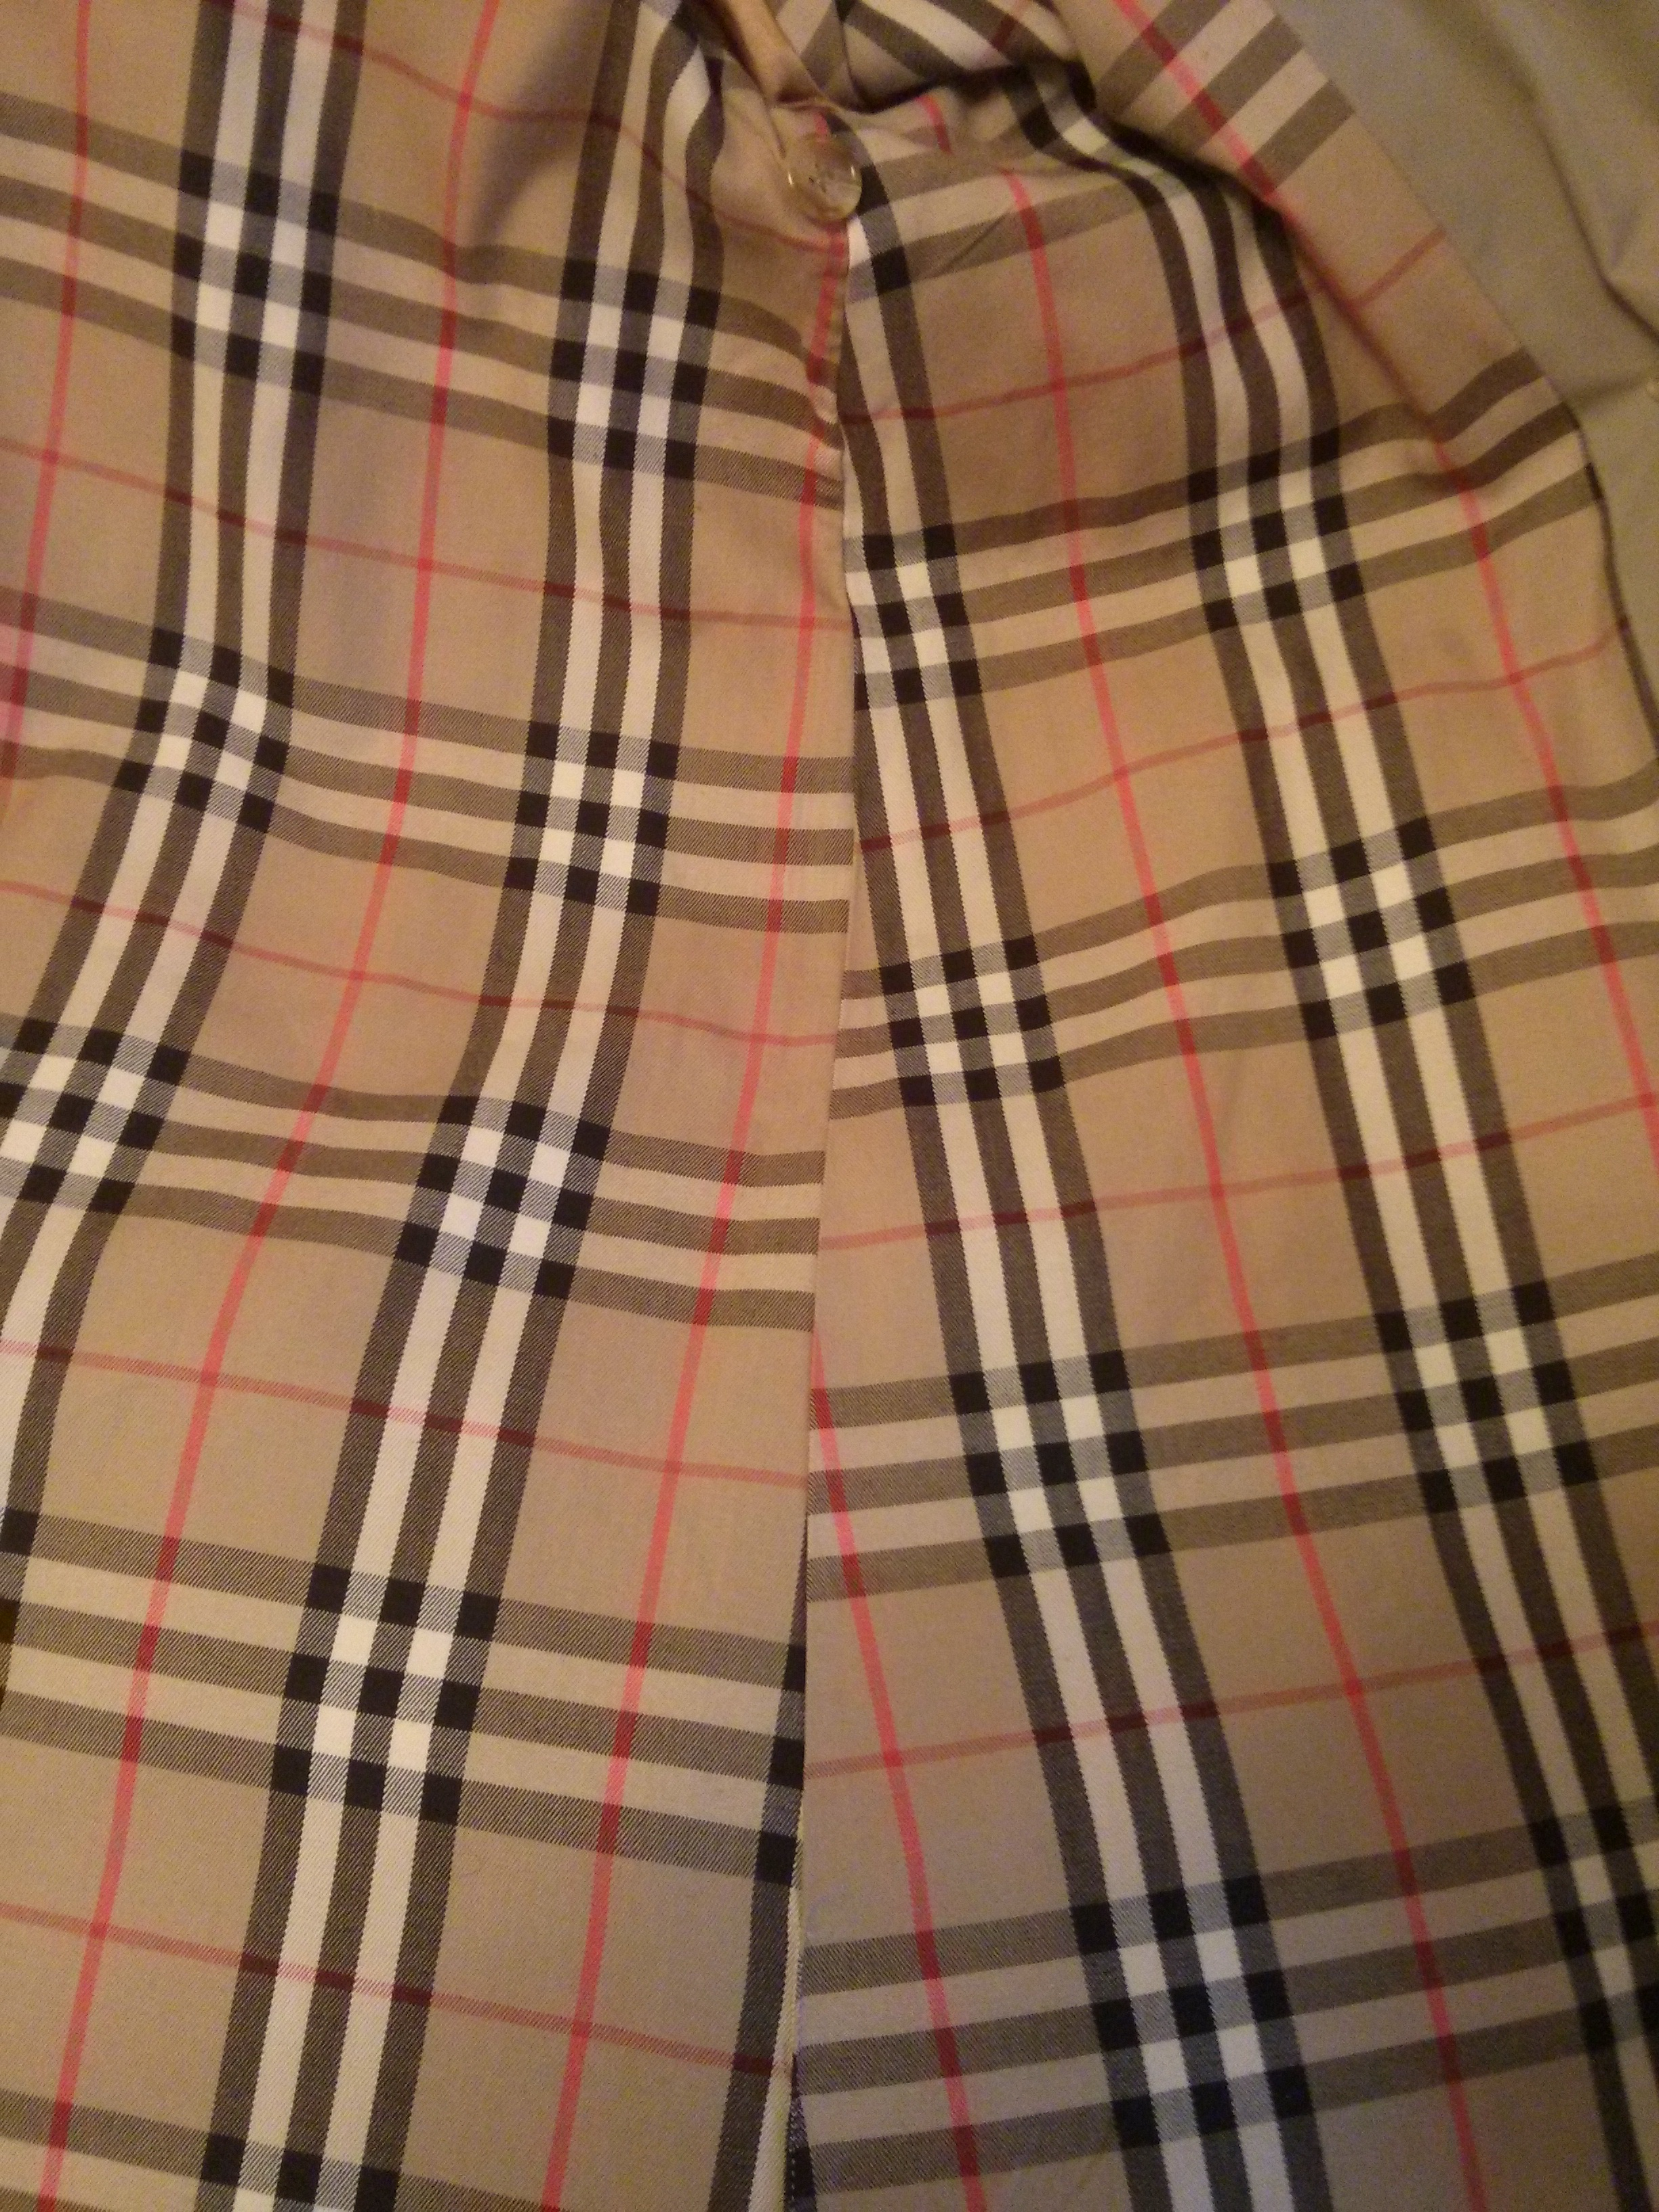 9b0dd39b56 Please help ..Buyer says she thinks trench may be ... - The eBay ...